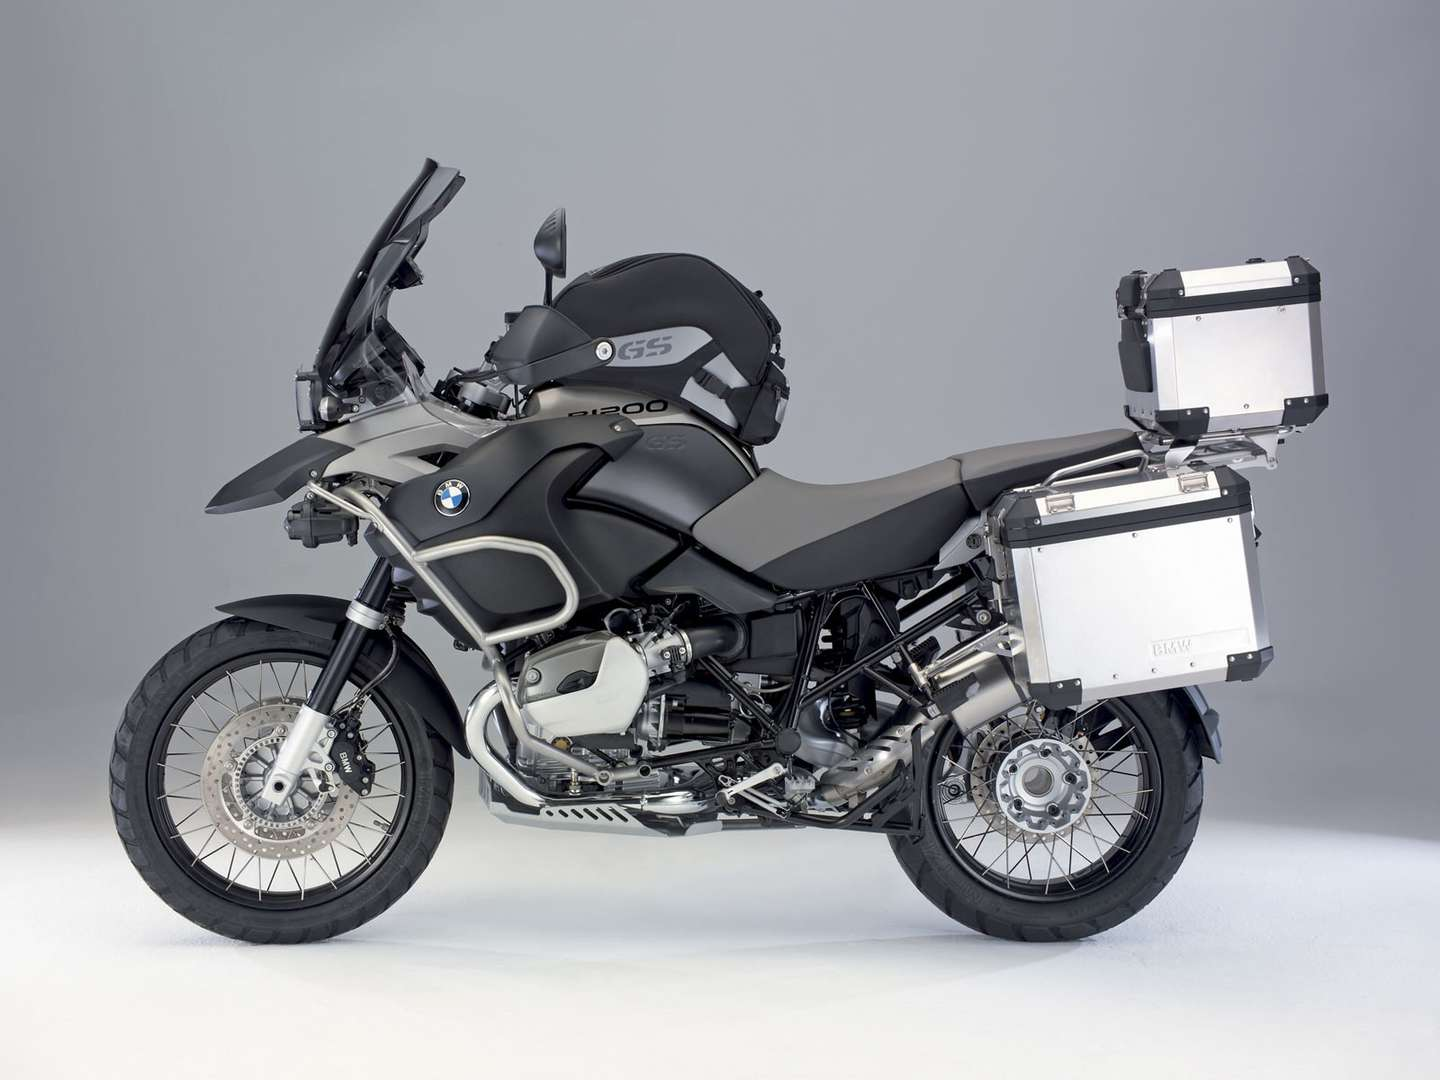 BMW R 1200 GS Adventure #7098397